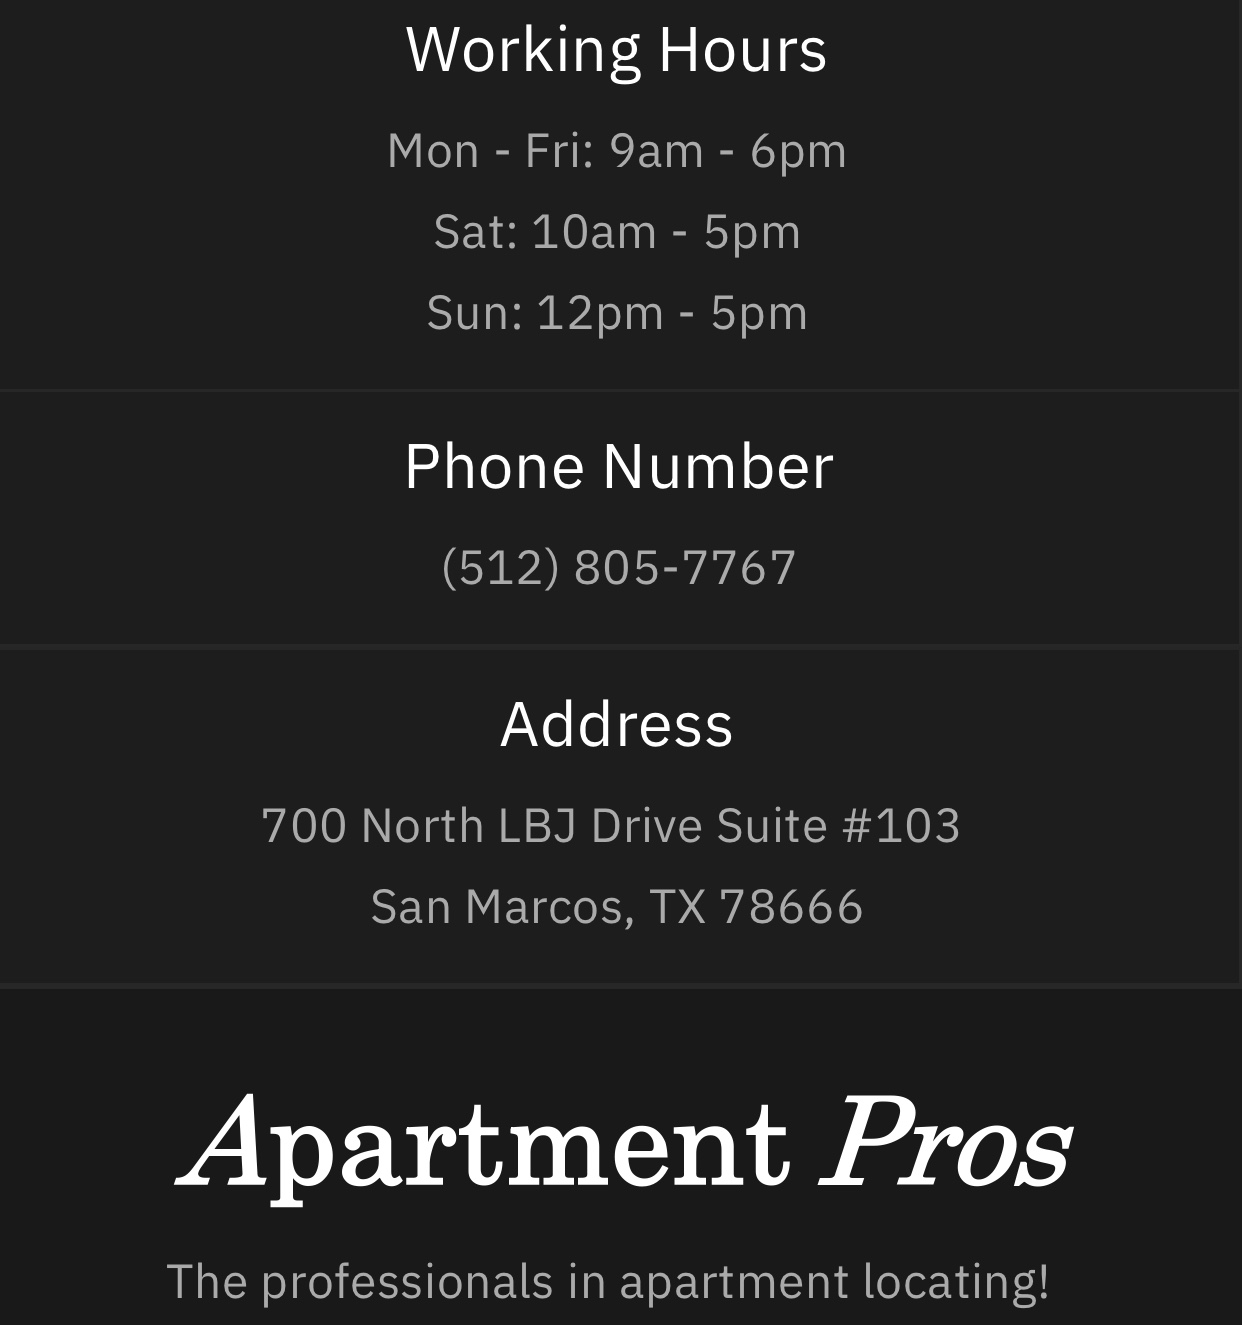 A screenshot from the Apartment Pros website listing their location, hours and phone number